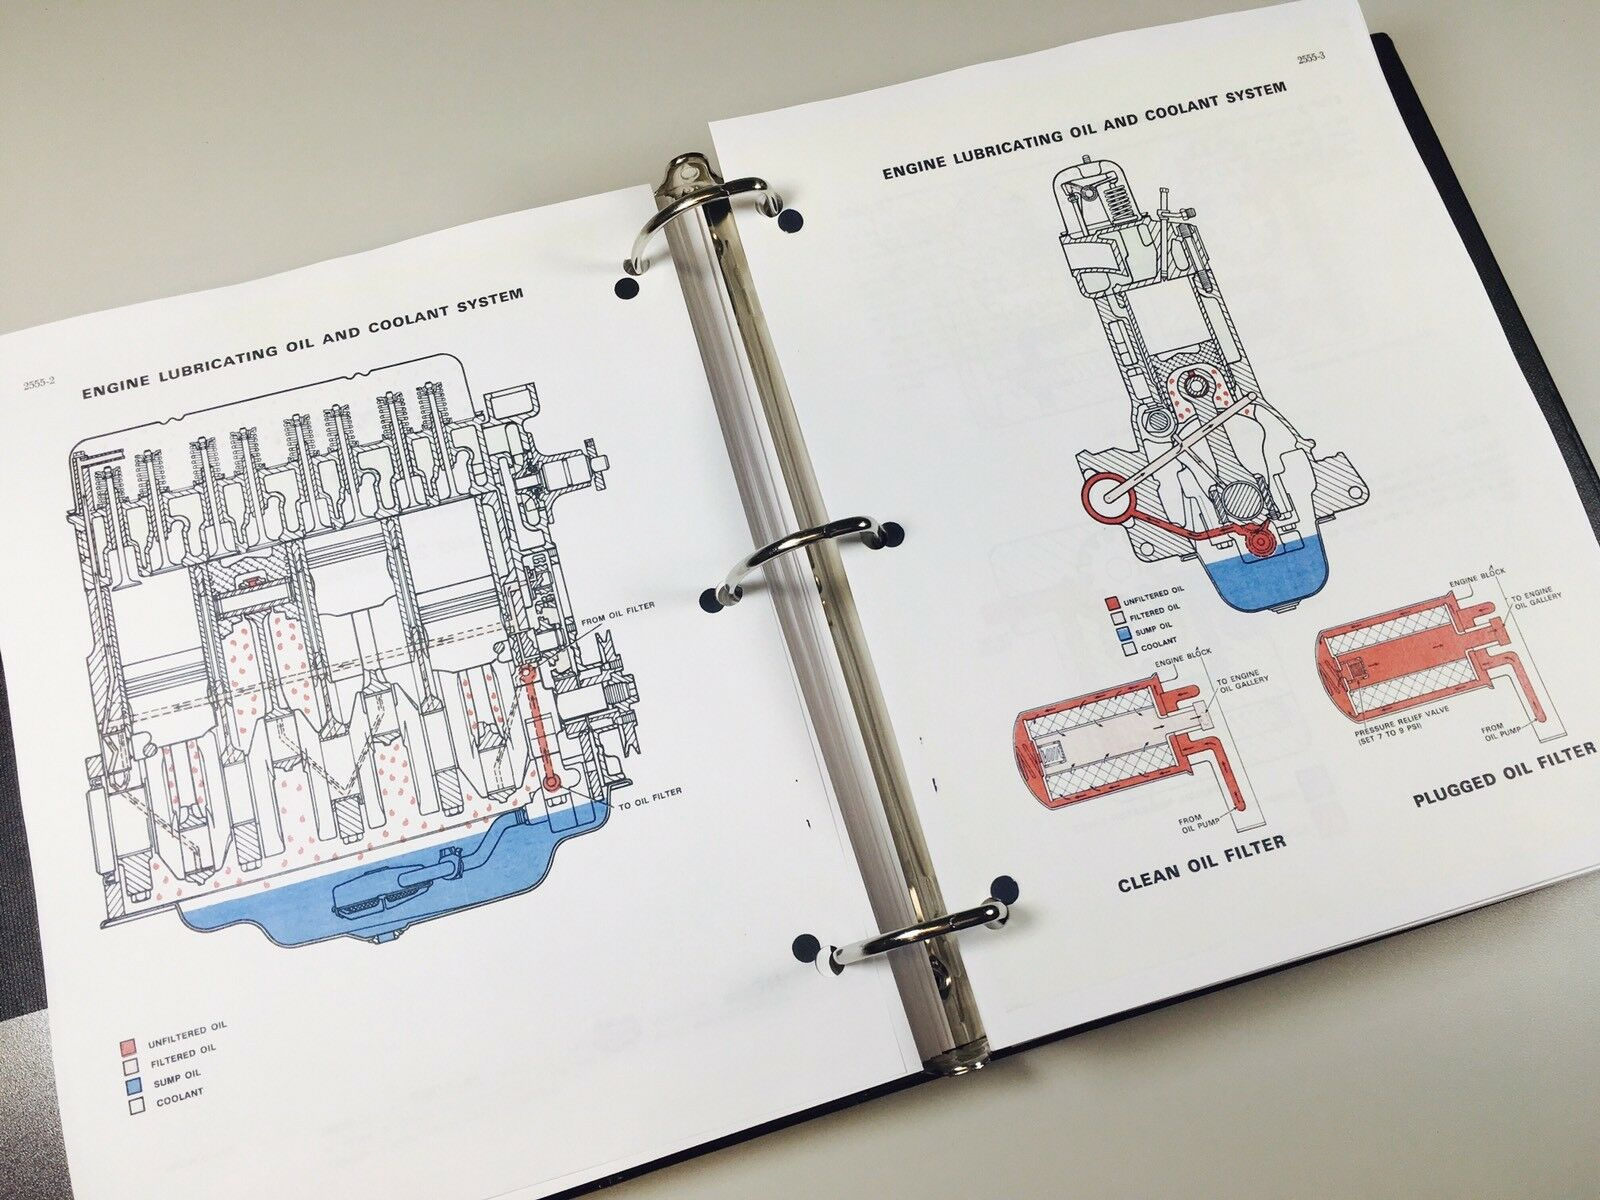 Case Construction Wiring Diagram Library Loader 580 Planter Fuel Tank